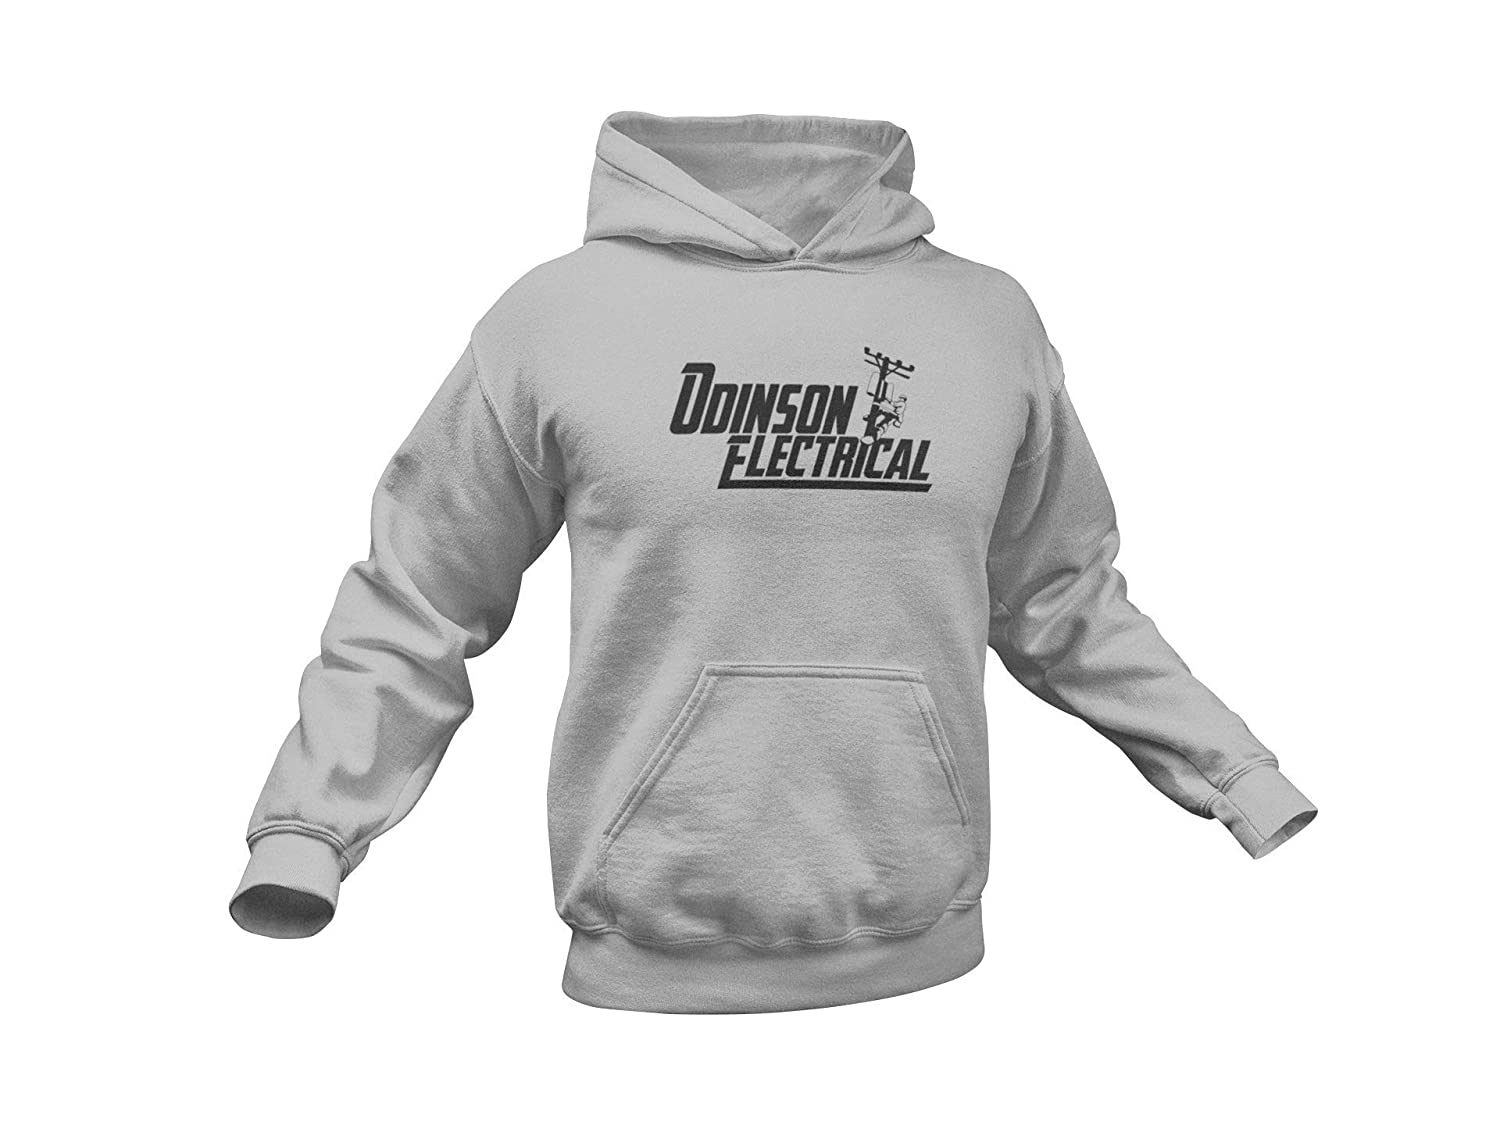 Thor Hoodie. Inspired Odinson Don't famous miss the campaign Uni Electrical. Adult